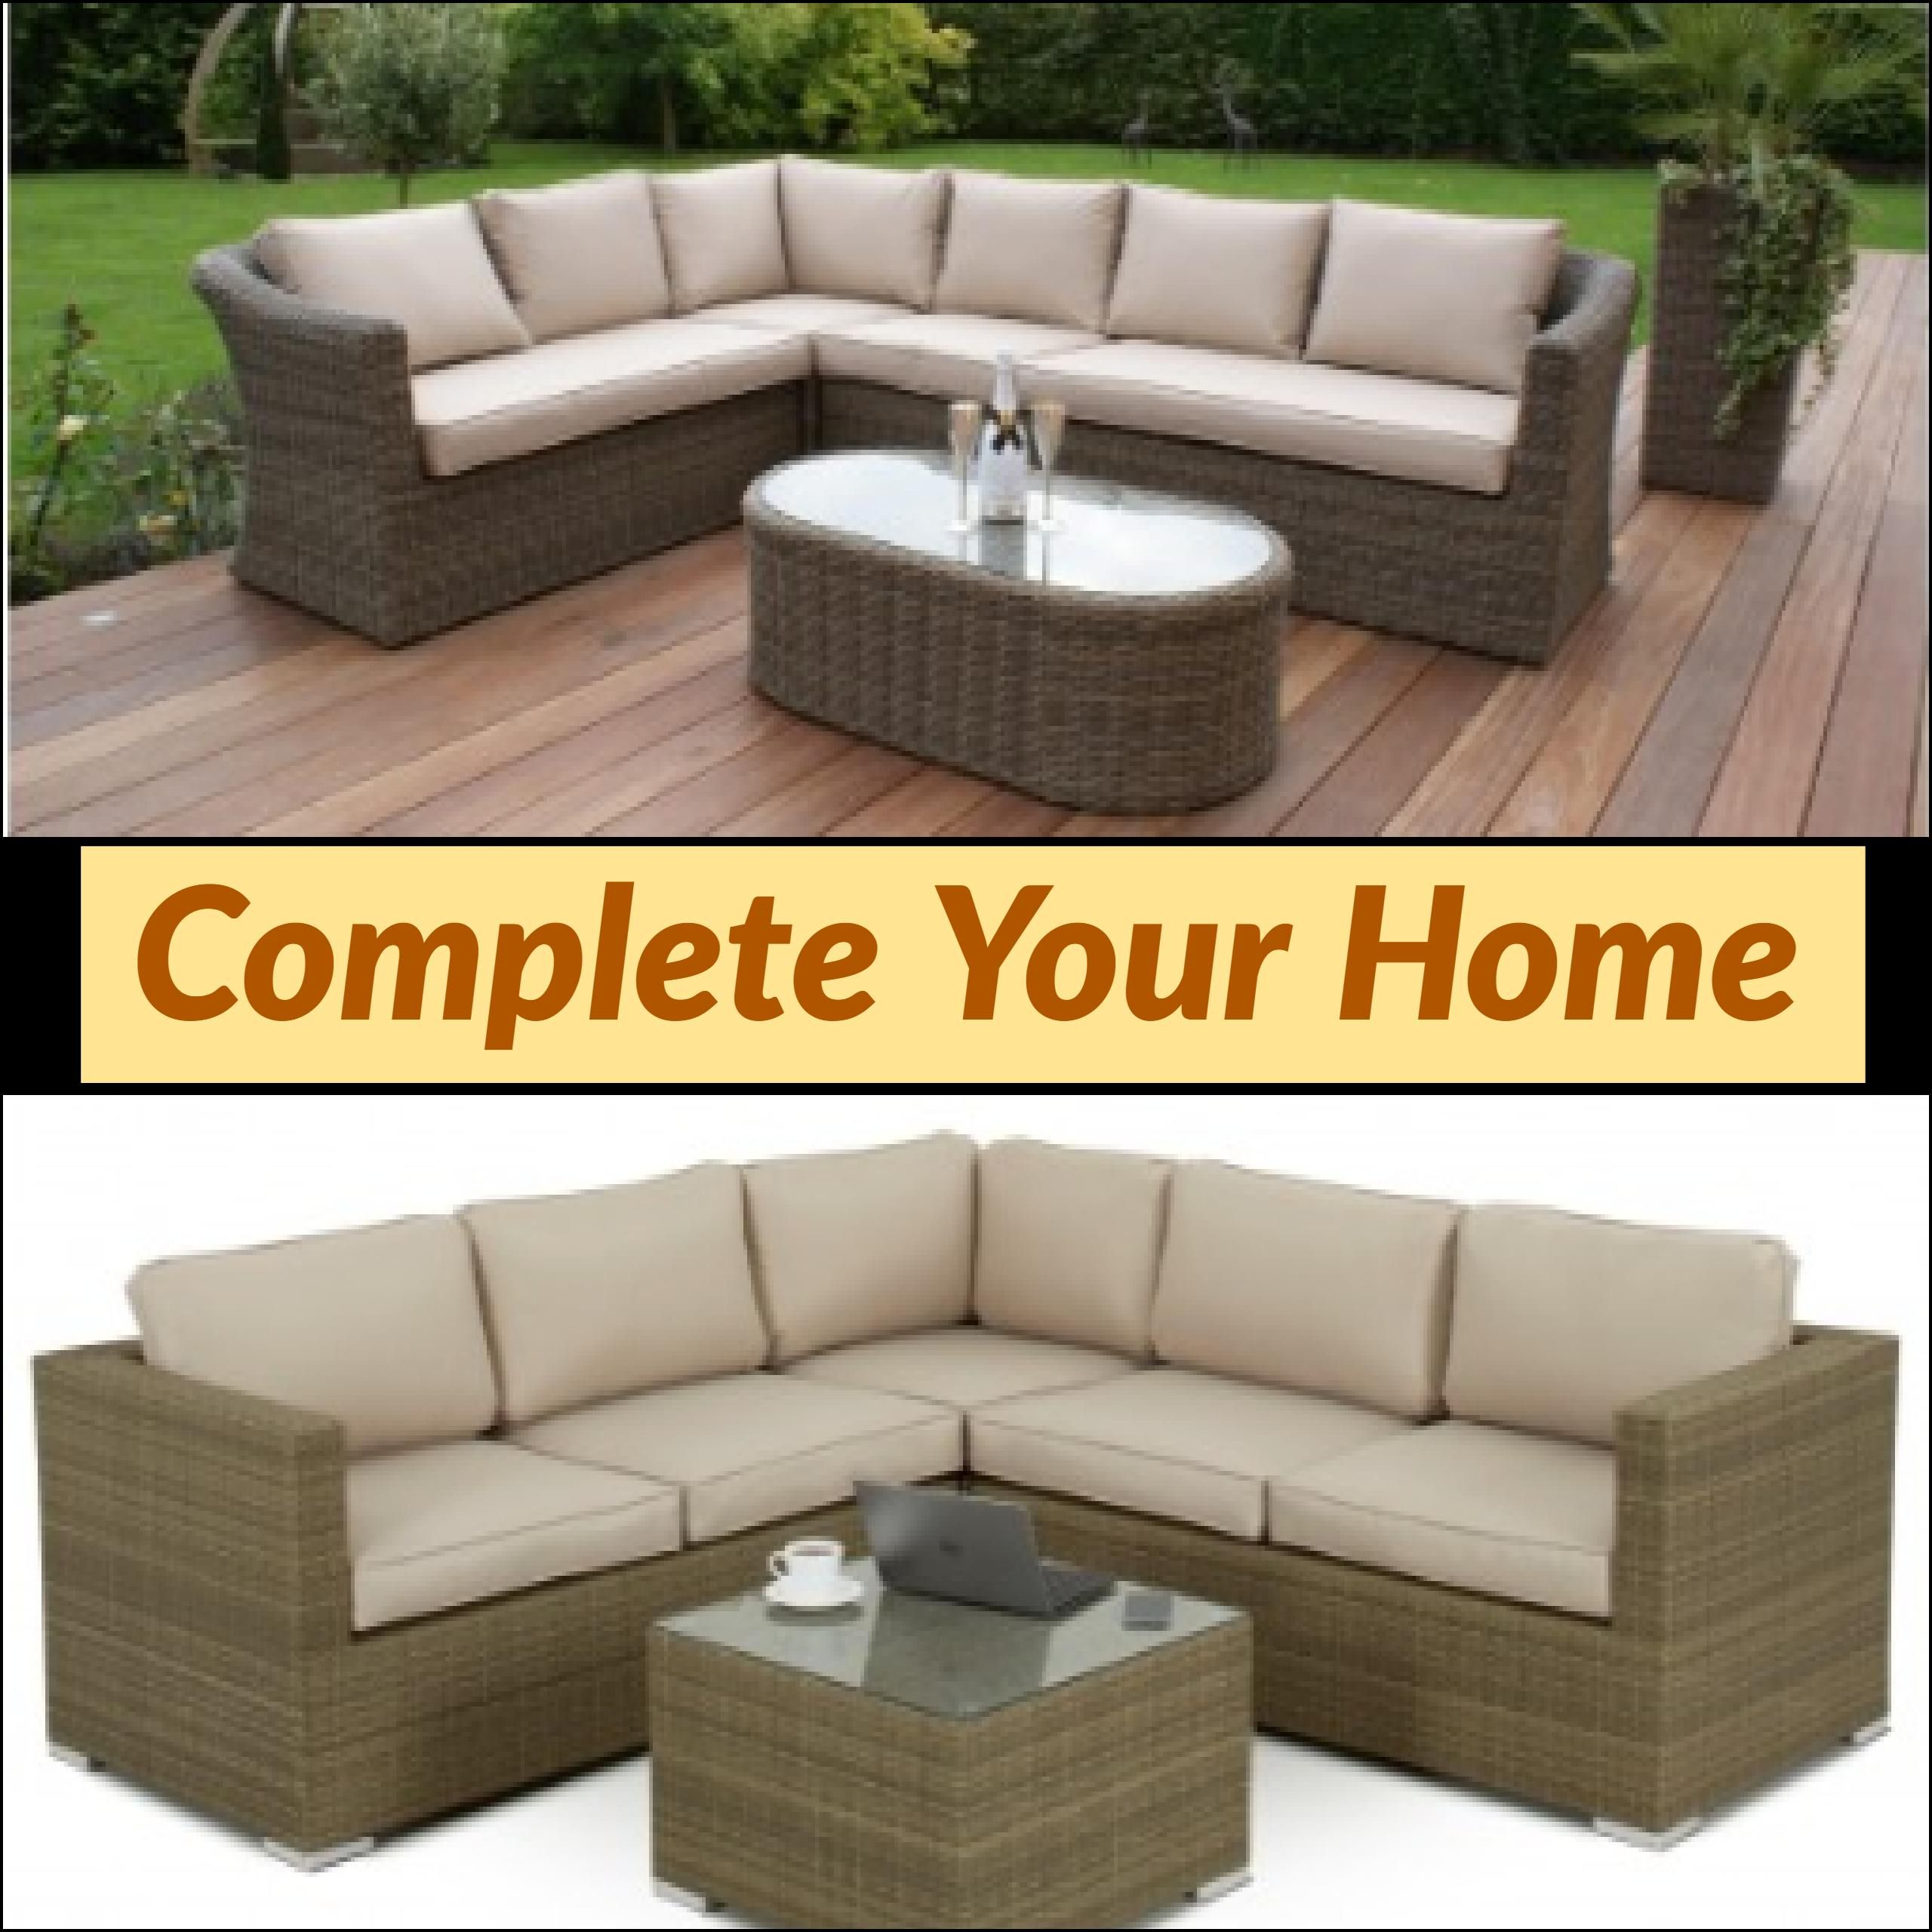 The Hand Woven Waterproof Garden Furniture With Thick Comfy Cushions To Give You The Ultimate Relaxation Gard Corner Sofa Set Outdoor Furniture Sets Sofa Set